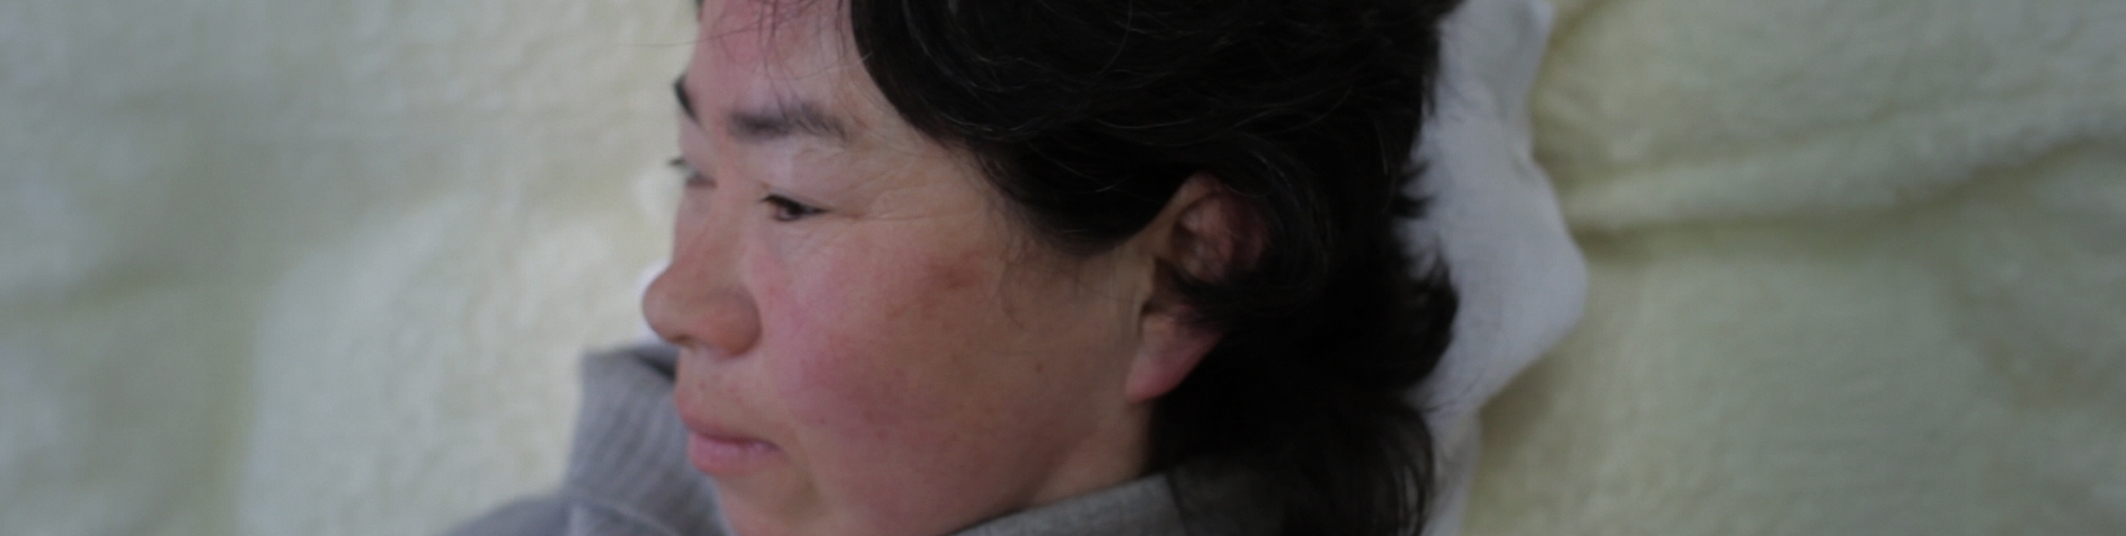 """INORI  (Pedro González-Rubio,Japan, 2012, 72 min., digital video. In Japanese with English subtitles)  """"Epic. […] González-Rubio's long, contemplative takes feel like an osmotic experience."""" –G. Allen Johnson, San Francisco Chronicle   Winner of the Golden Leopard at the Locarno Film Festival, the third feature film by acclaimed director González-Rubio ( Alamar ) is a stunning and poetic documentary shot in a tiny mountain community in Japan, made at the invitation of Japanese director Naomi Kawase and the Nara Film Festival. Blending documentary and narrative, Inori (Japanese for 'prayer') depicts the lives of the aging population of the isolated village. As the younger generations have left to look for work elsewhere, the remaining elderly inhabitants perform their everyday routine with stoicism and dignity.   Saturday, September 7 at 7:15pm; and Thursday, September 12 at 9pm"""